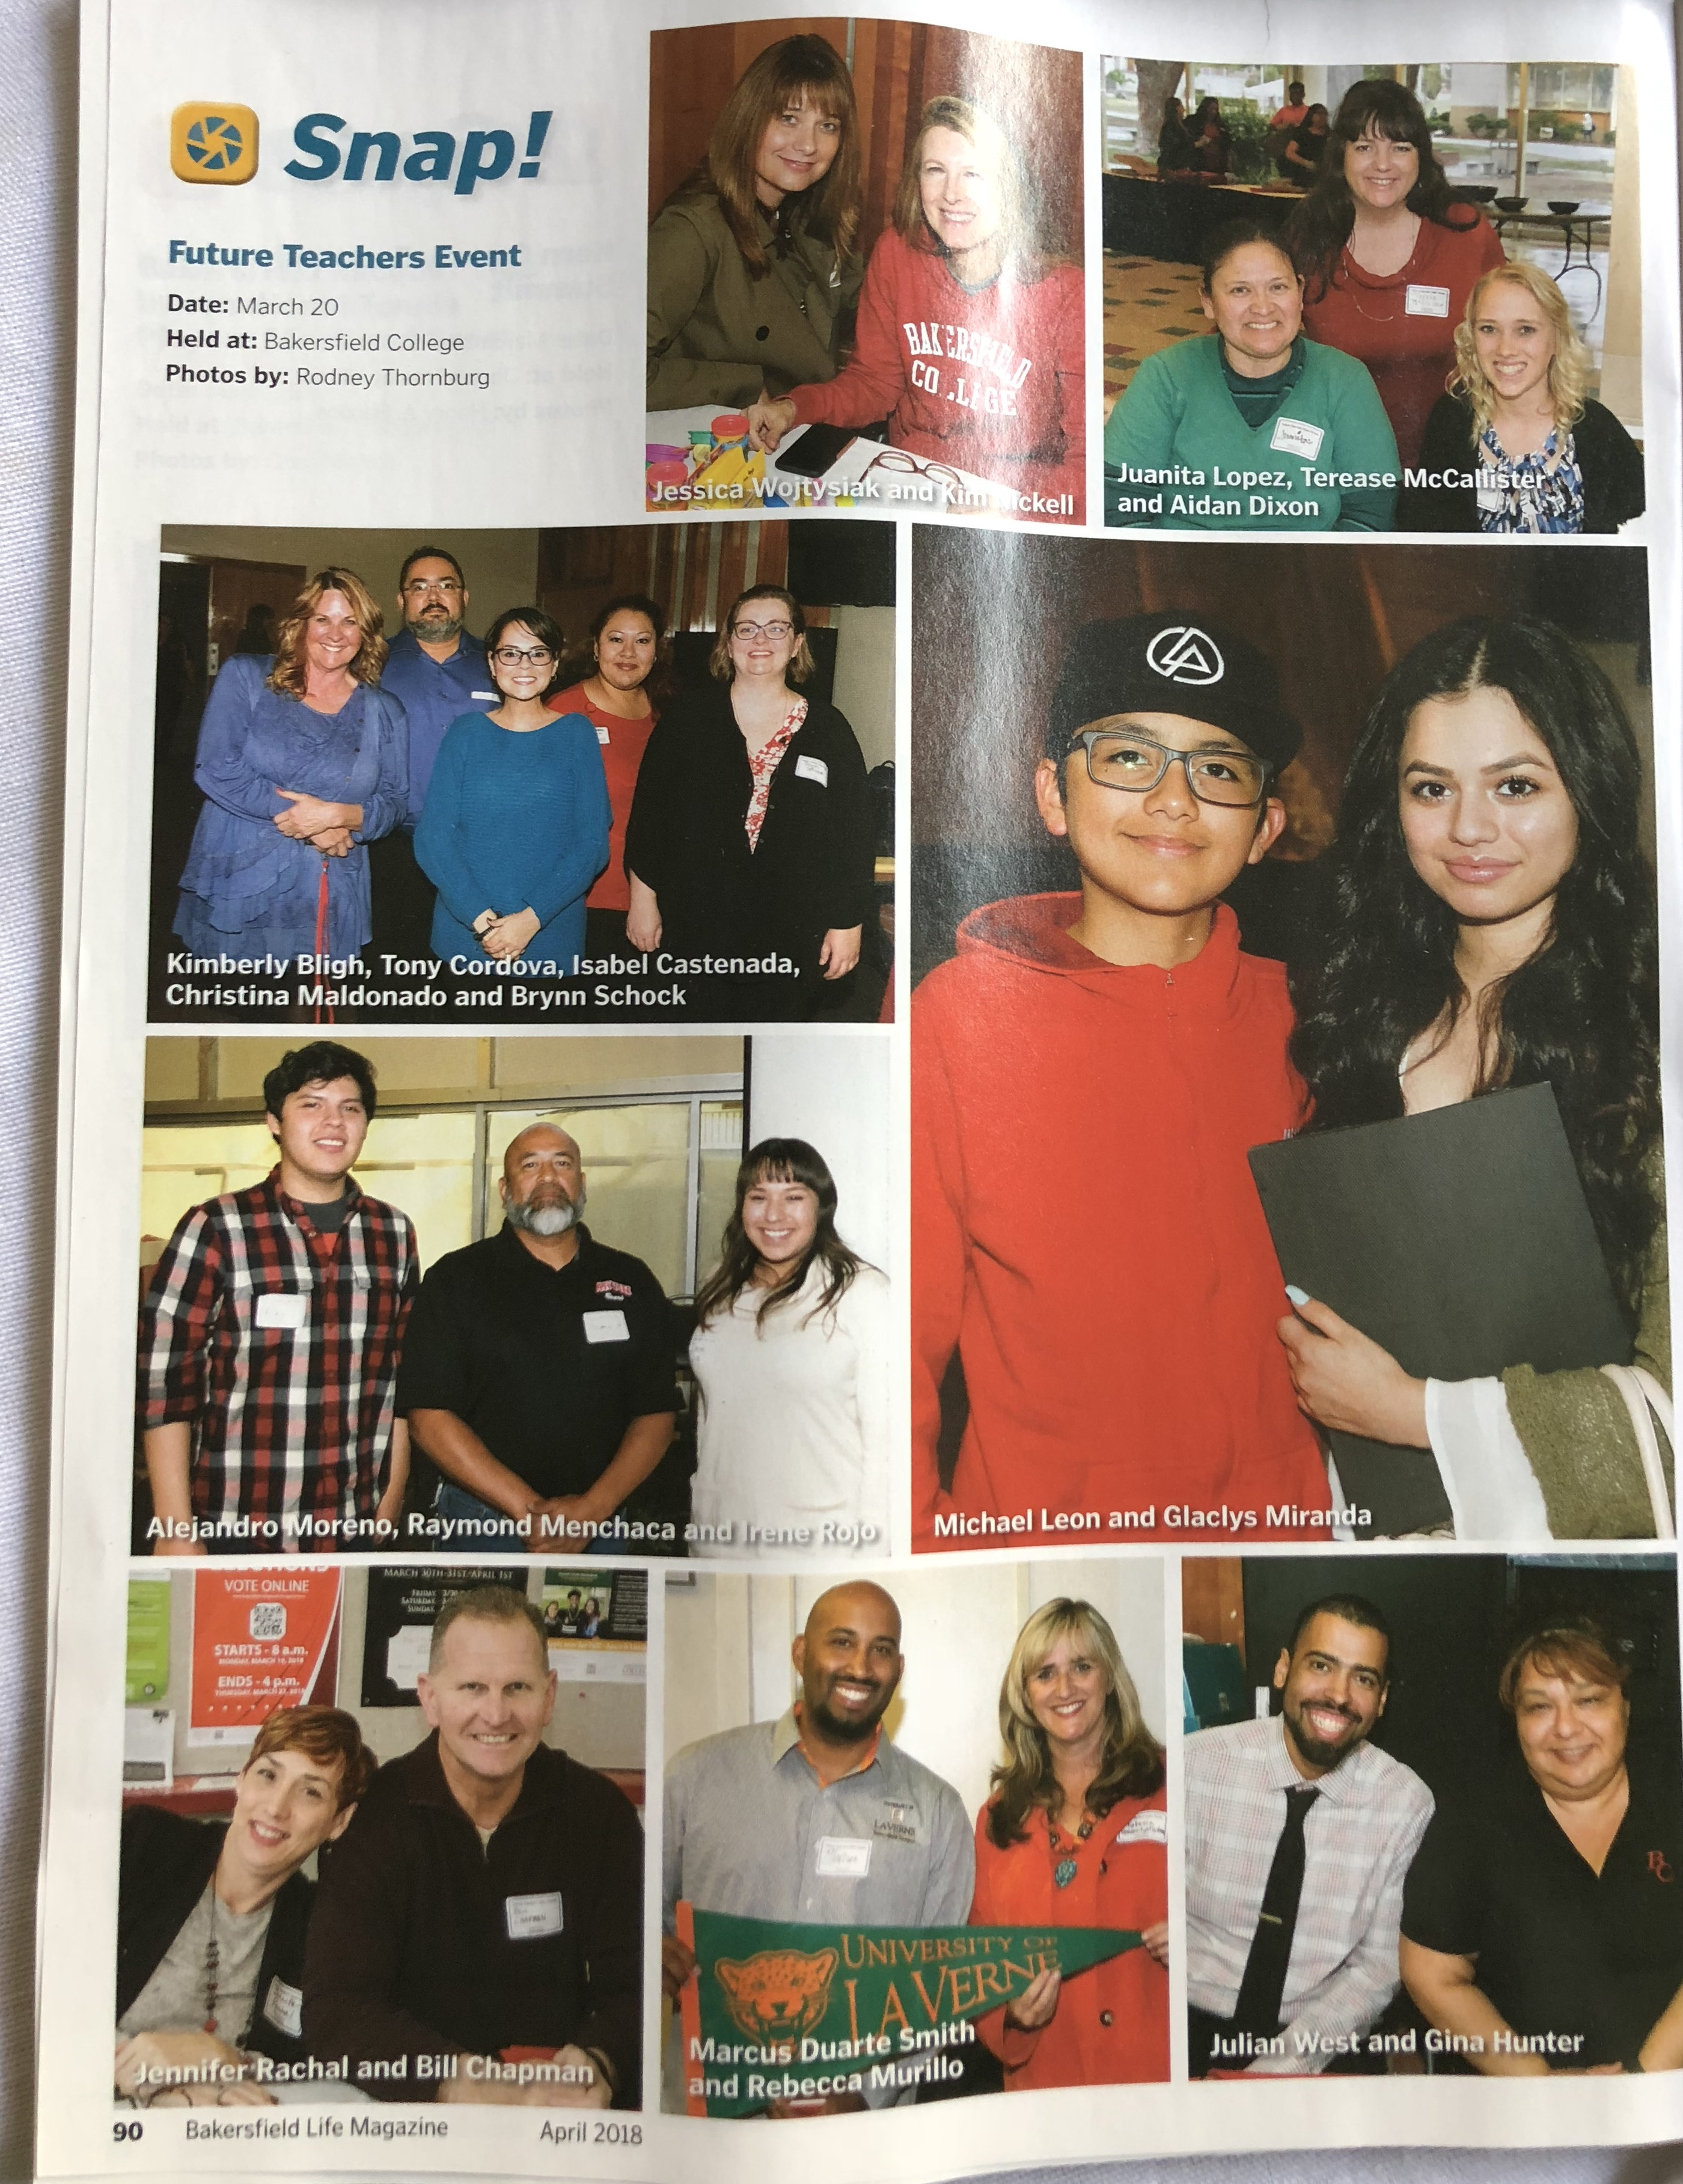 Bakersfield Life Magazine March 31 2018 Future Teachers Event Photos by Rod Thornburg